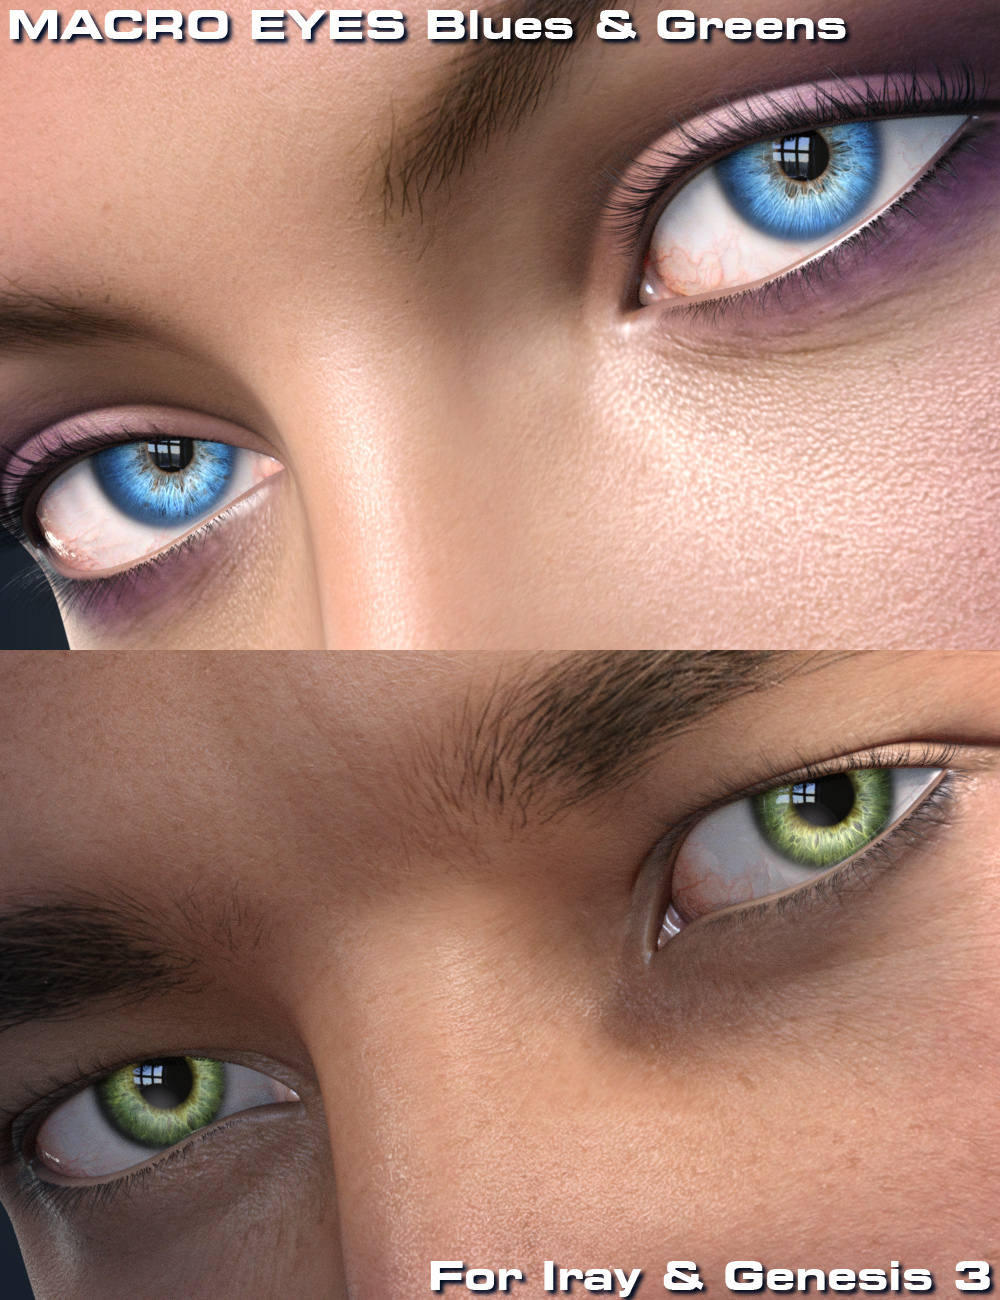 Macro Eyes for Iray Blues and Greens by: Parris, 3D Models by Daz 3D